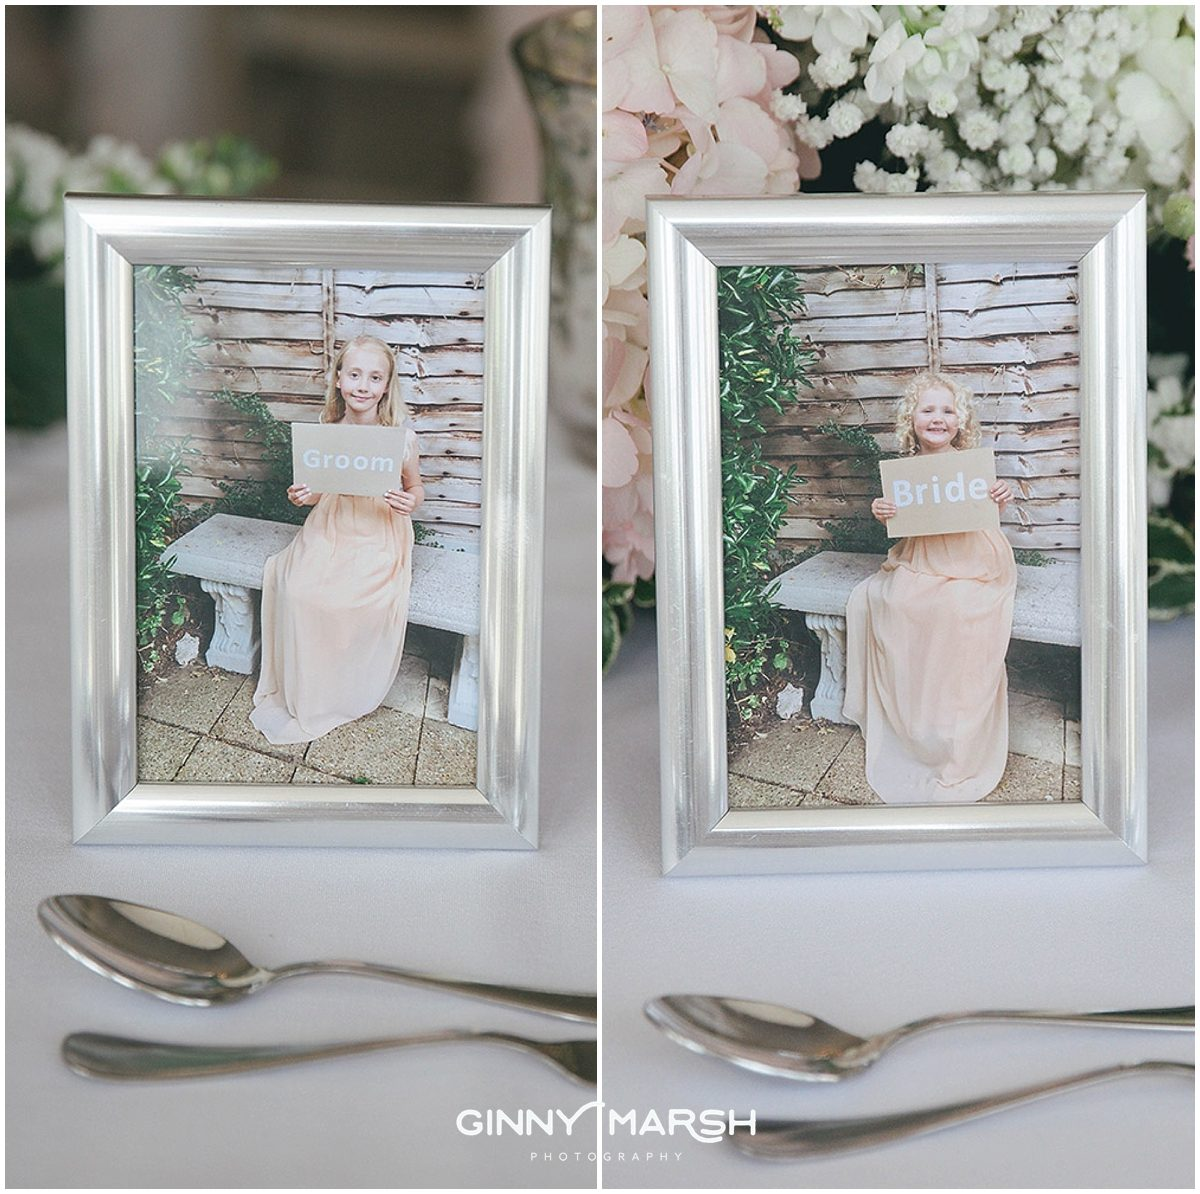 Wedding table names | Ginny marsh photography